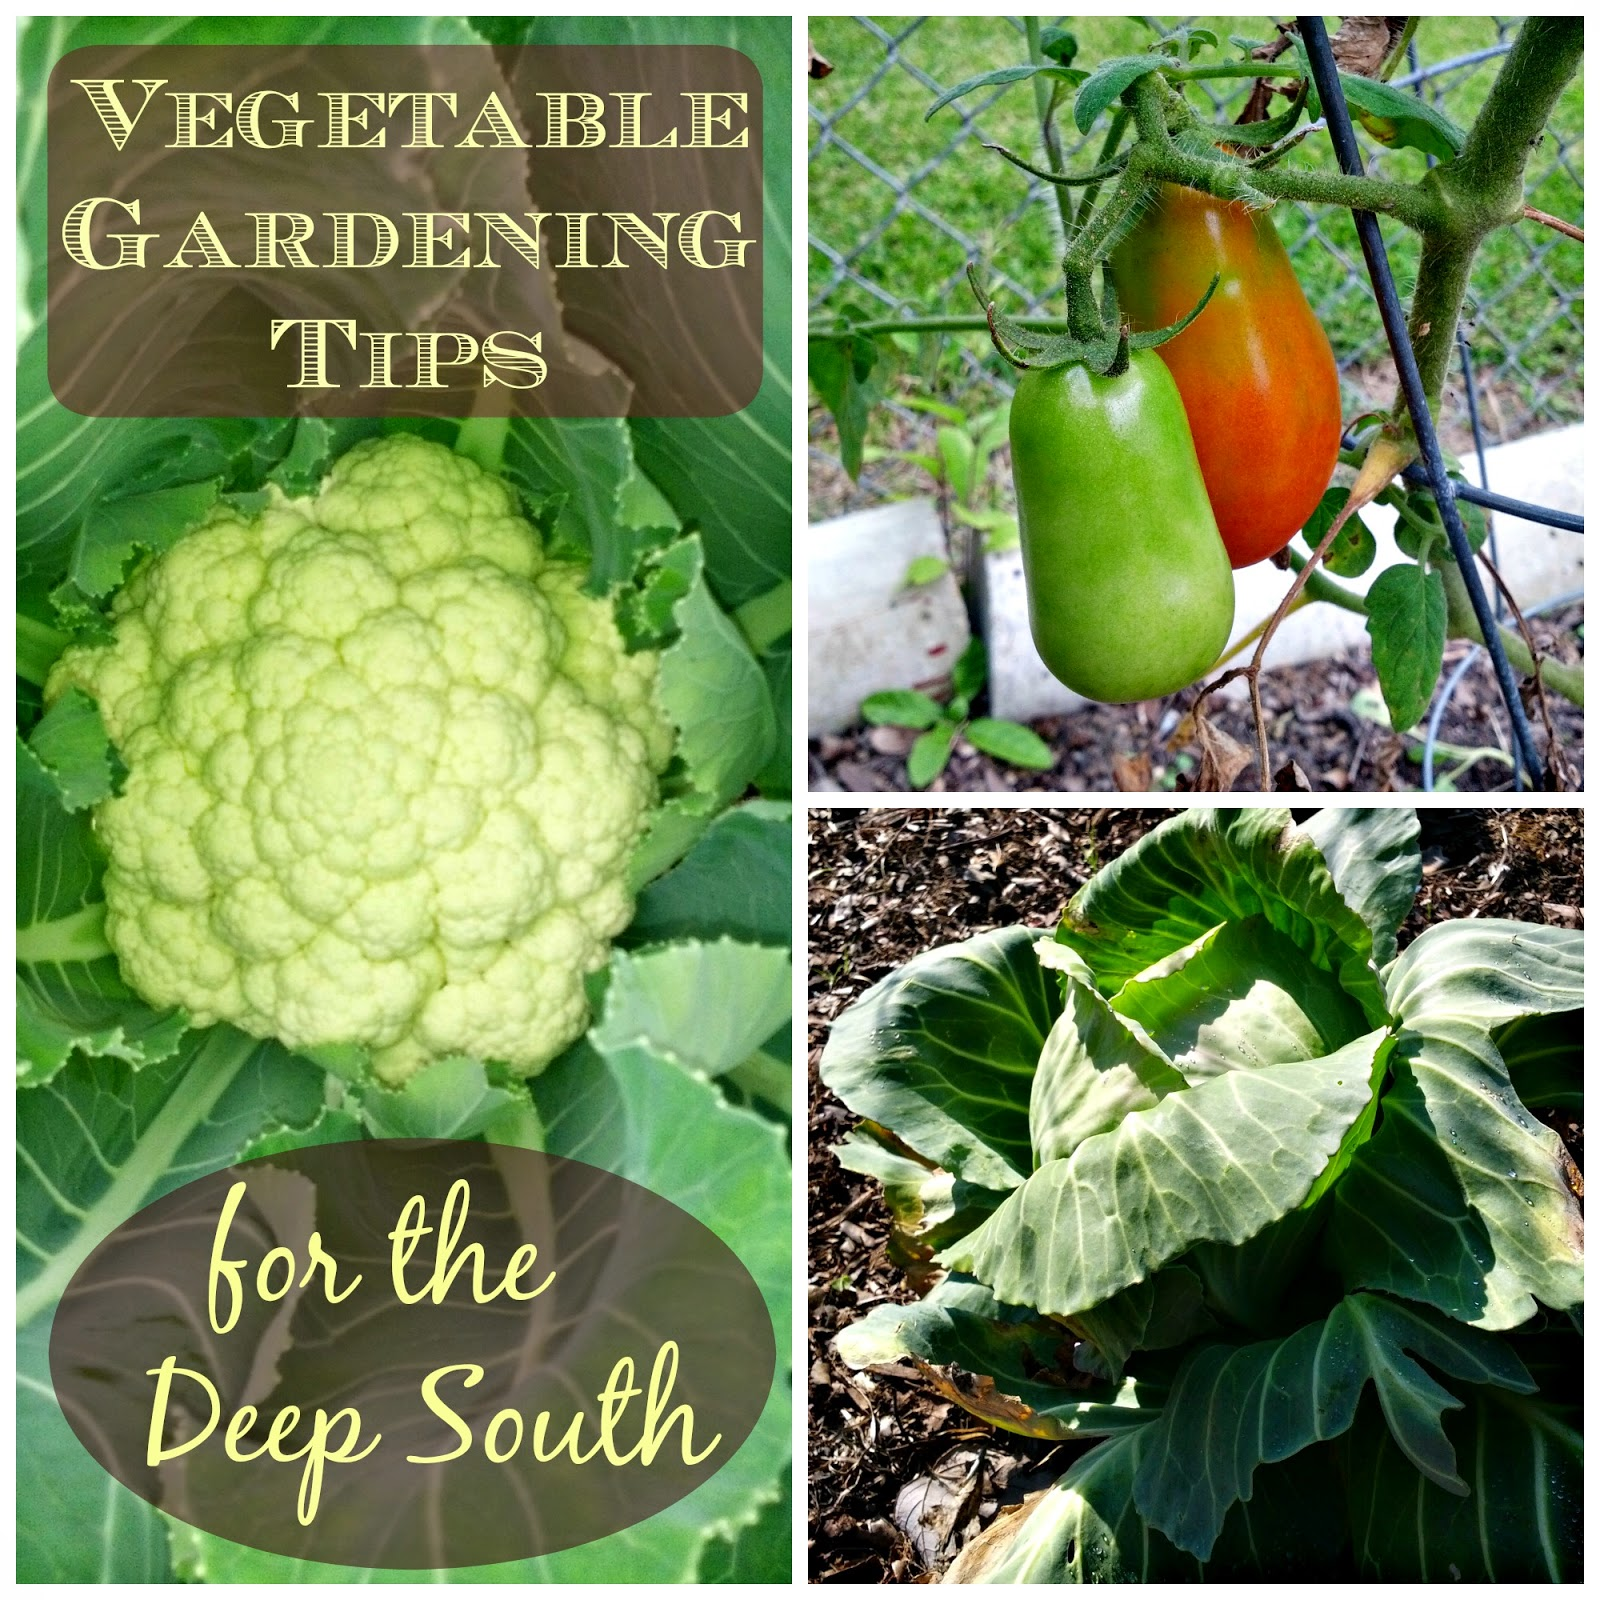 Greneaux gardens vegetable gardening tips for the deep south for Gardening 101 vegetables